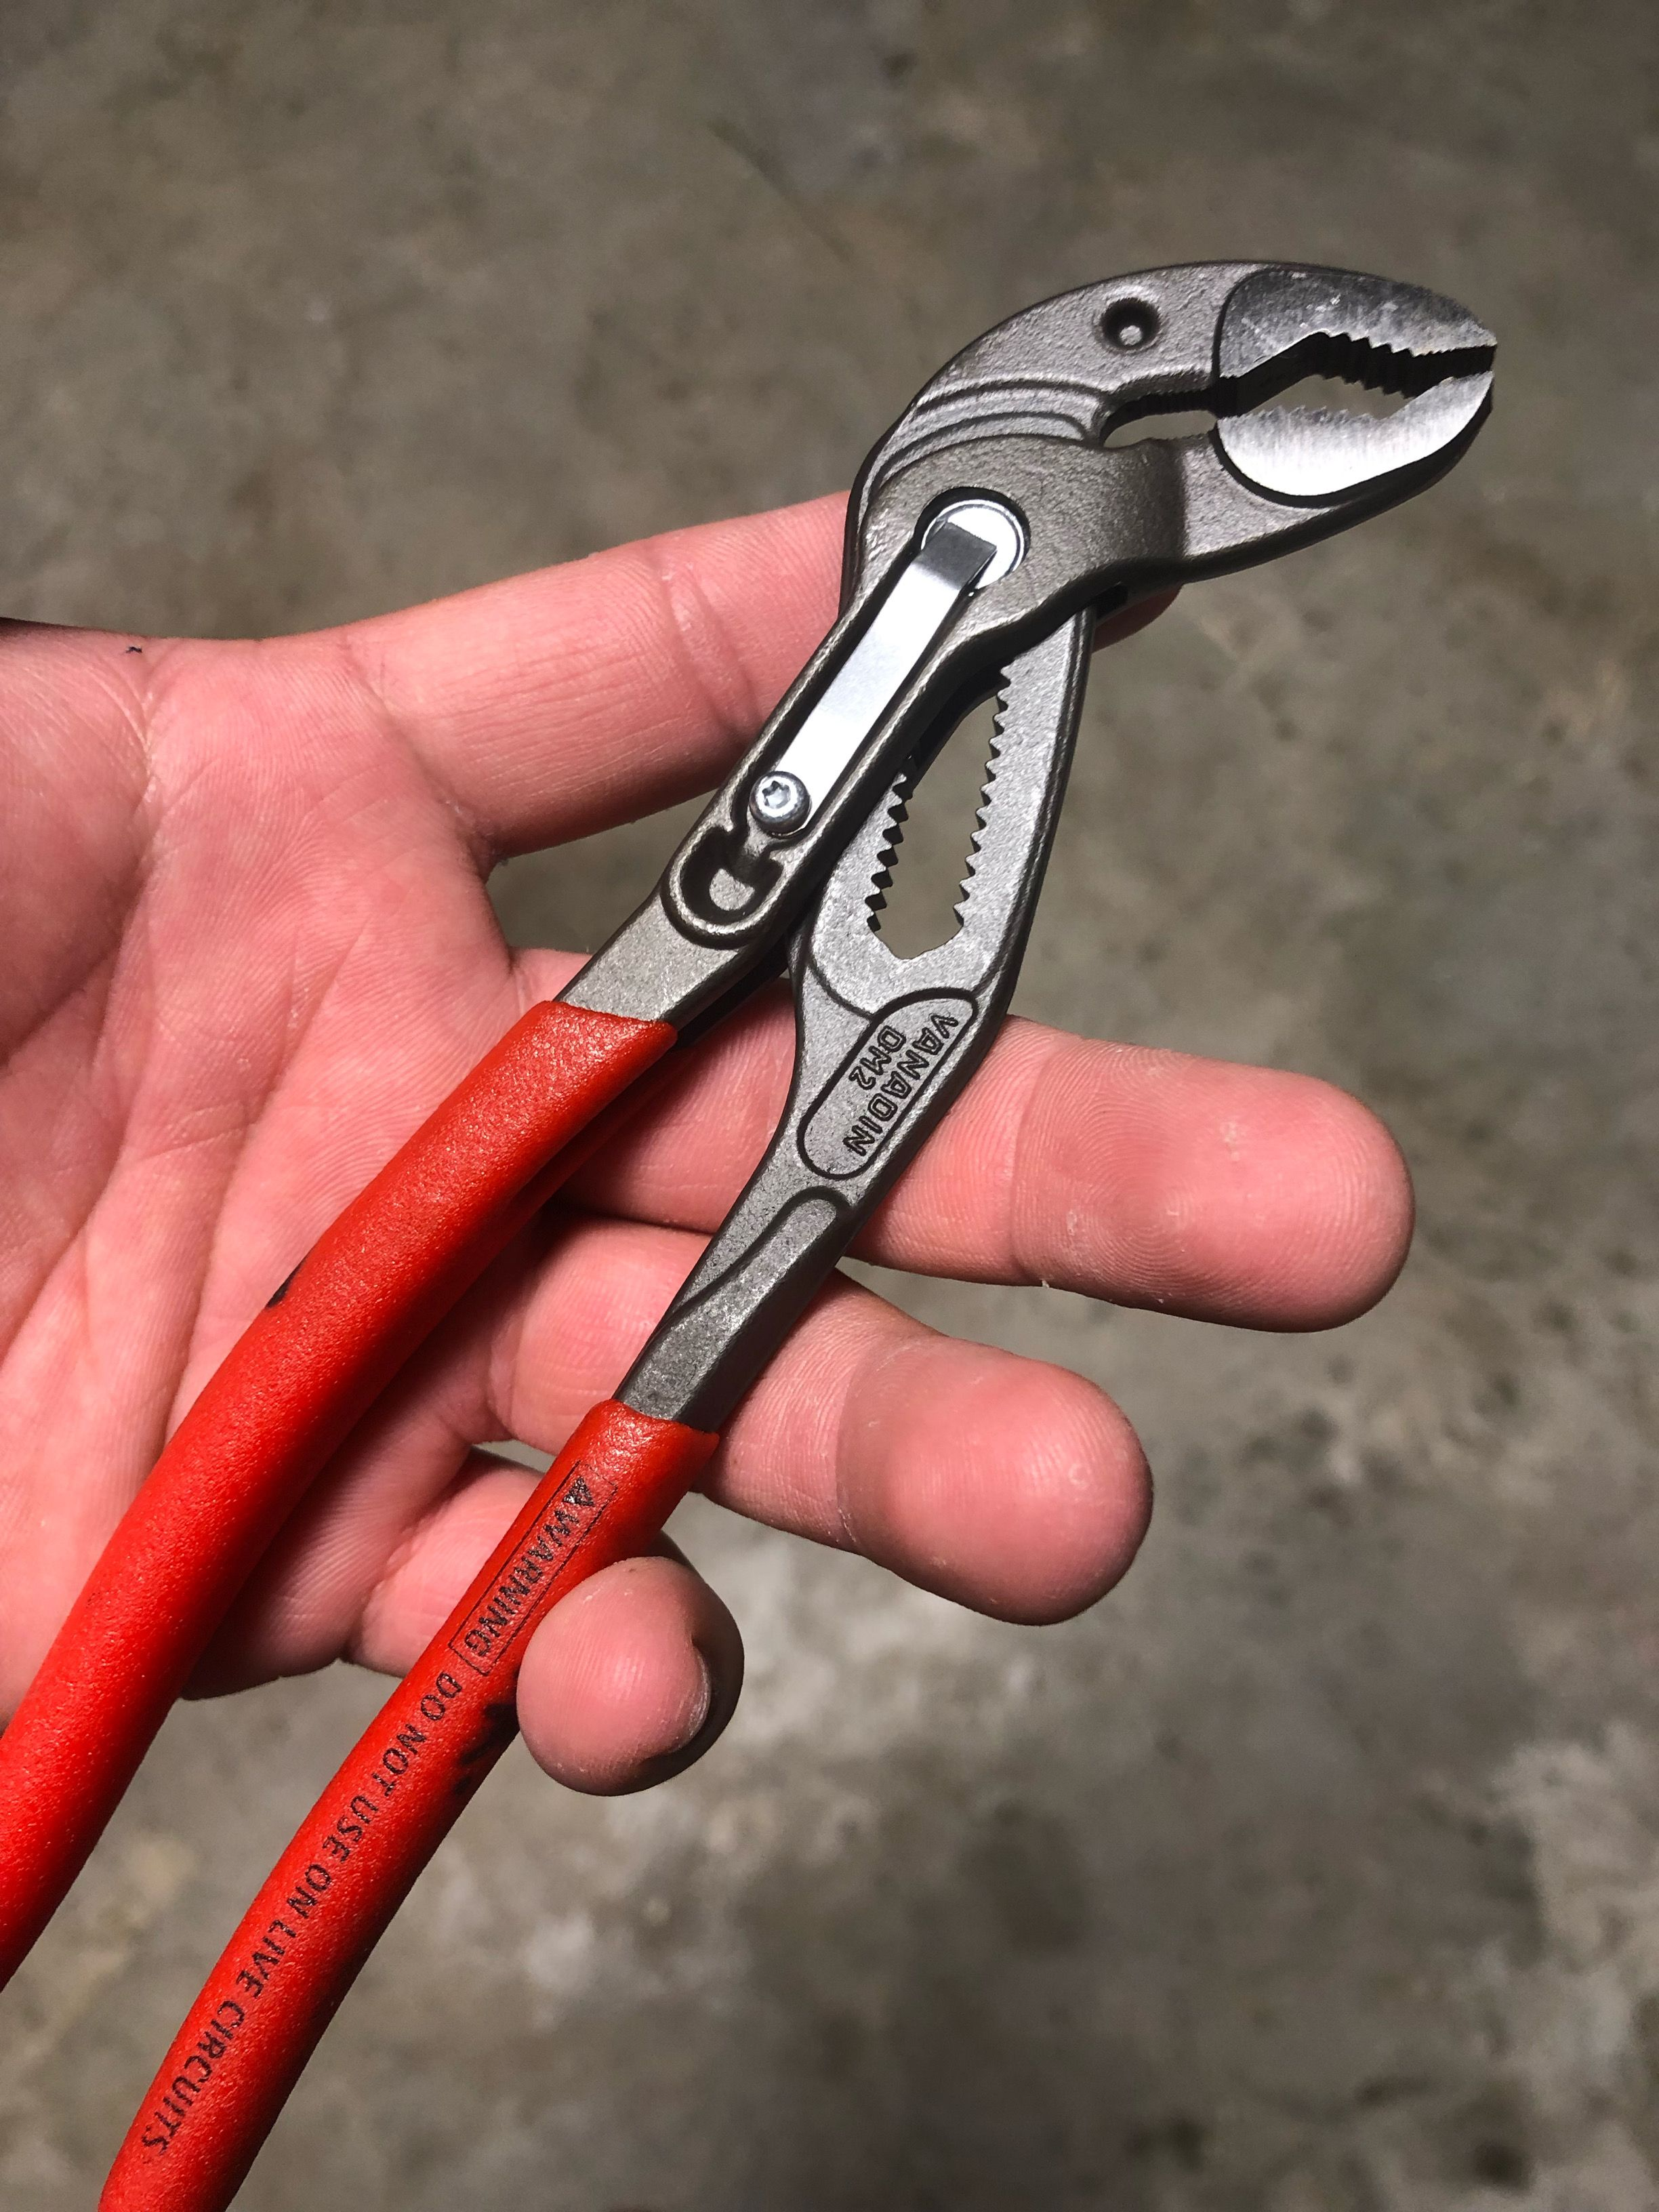 Forget Those Channellocks Buy These Knipex Pliers Instead Best Pliers Out There I Highly Recommend Knipex Pliers Pl Tools Garden Tools Pliers